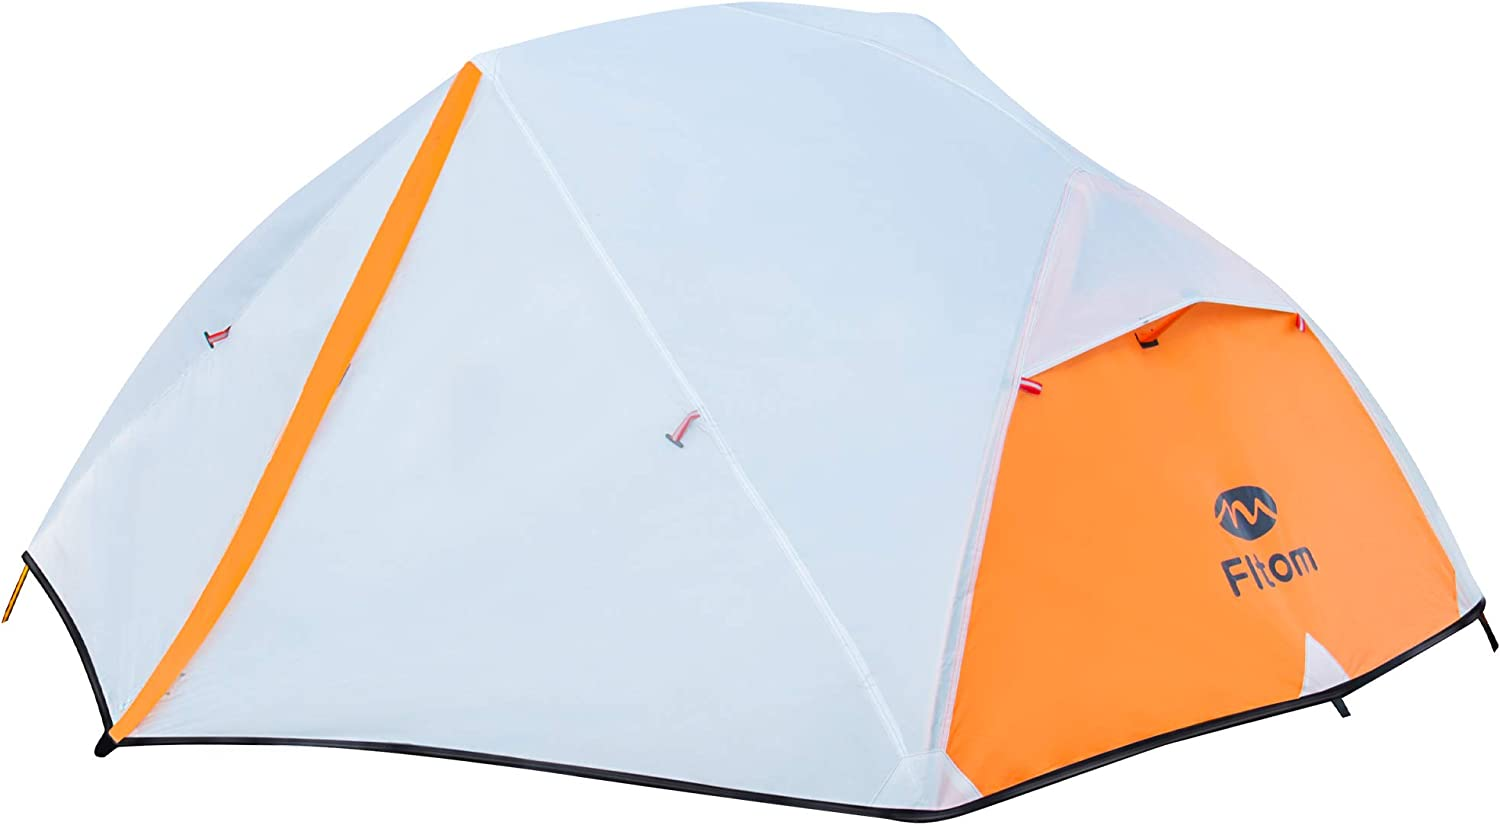 Fltom 2 Person Camping Popular Spring new work one after another brand in the world Tent 3 S Backpacking for Ultralight